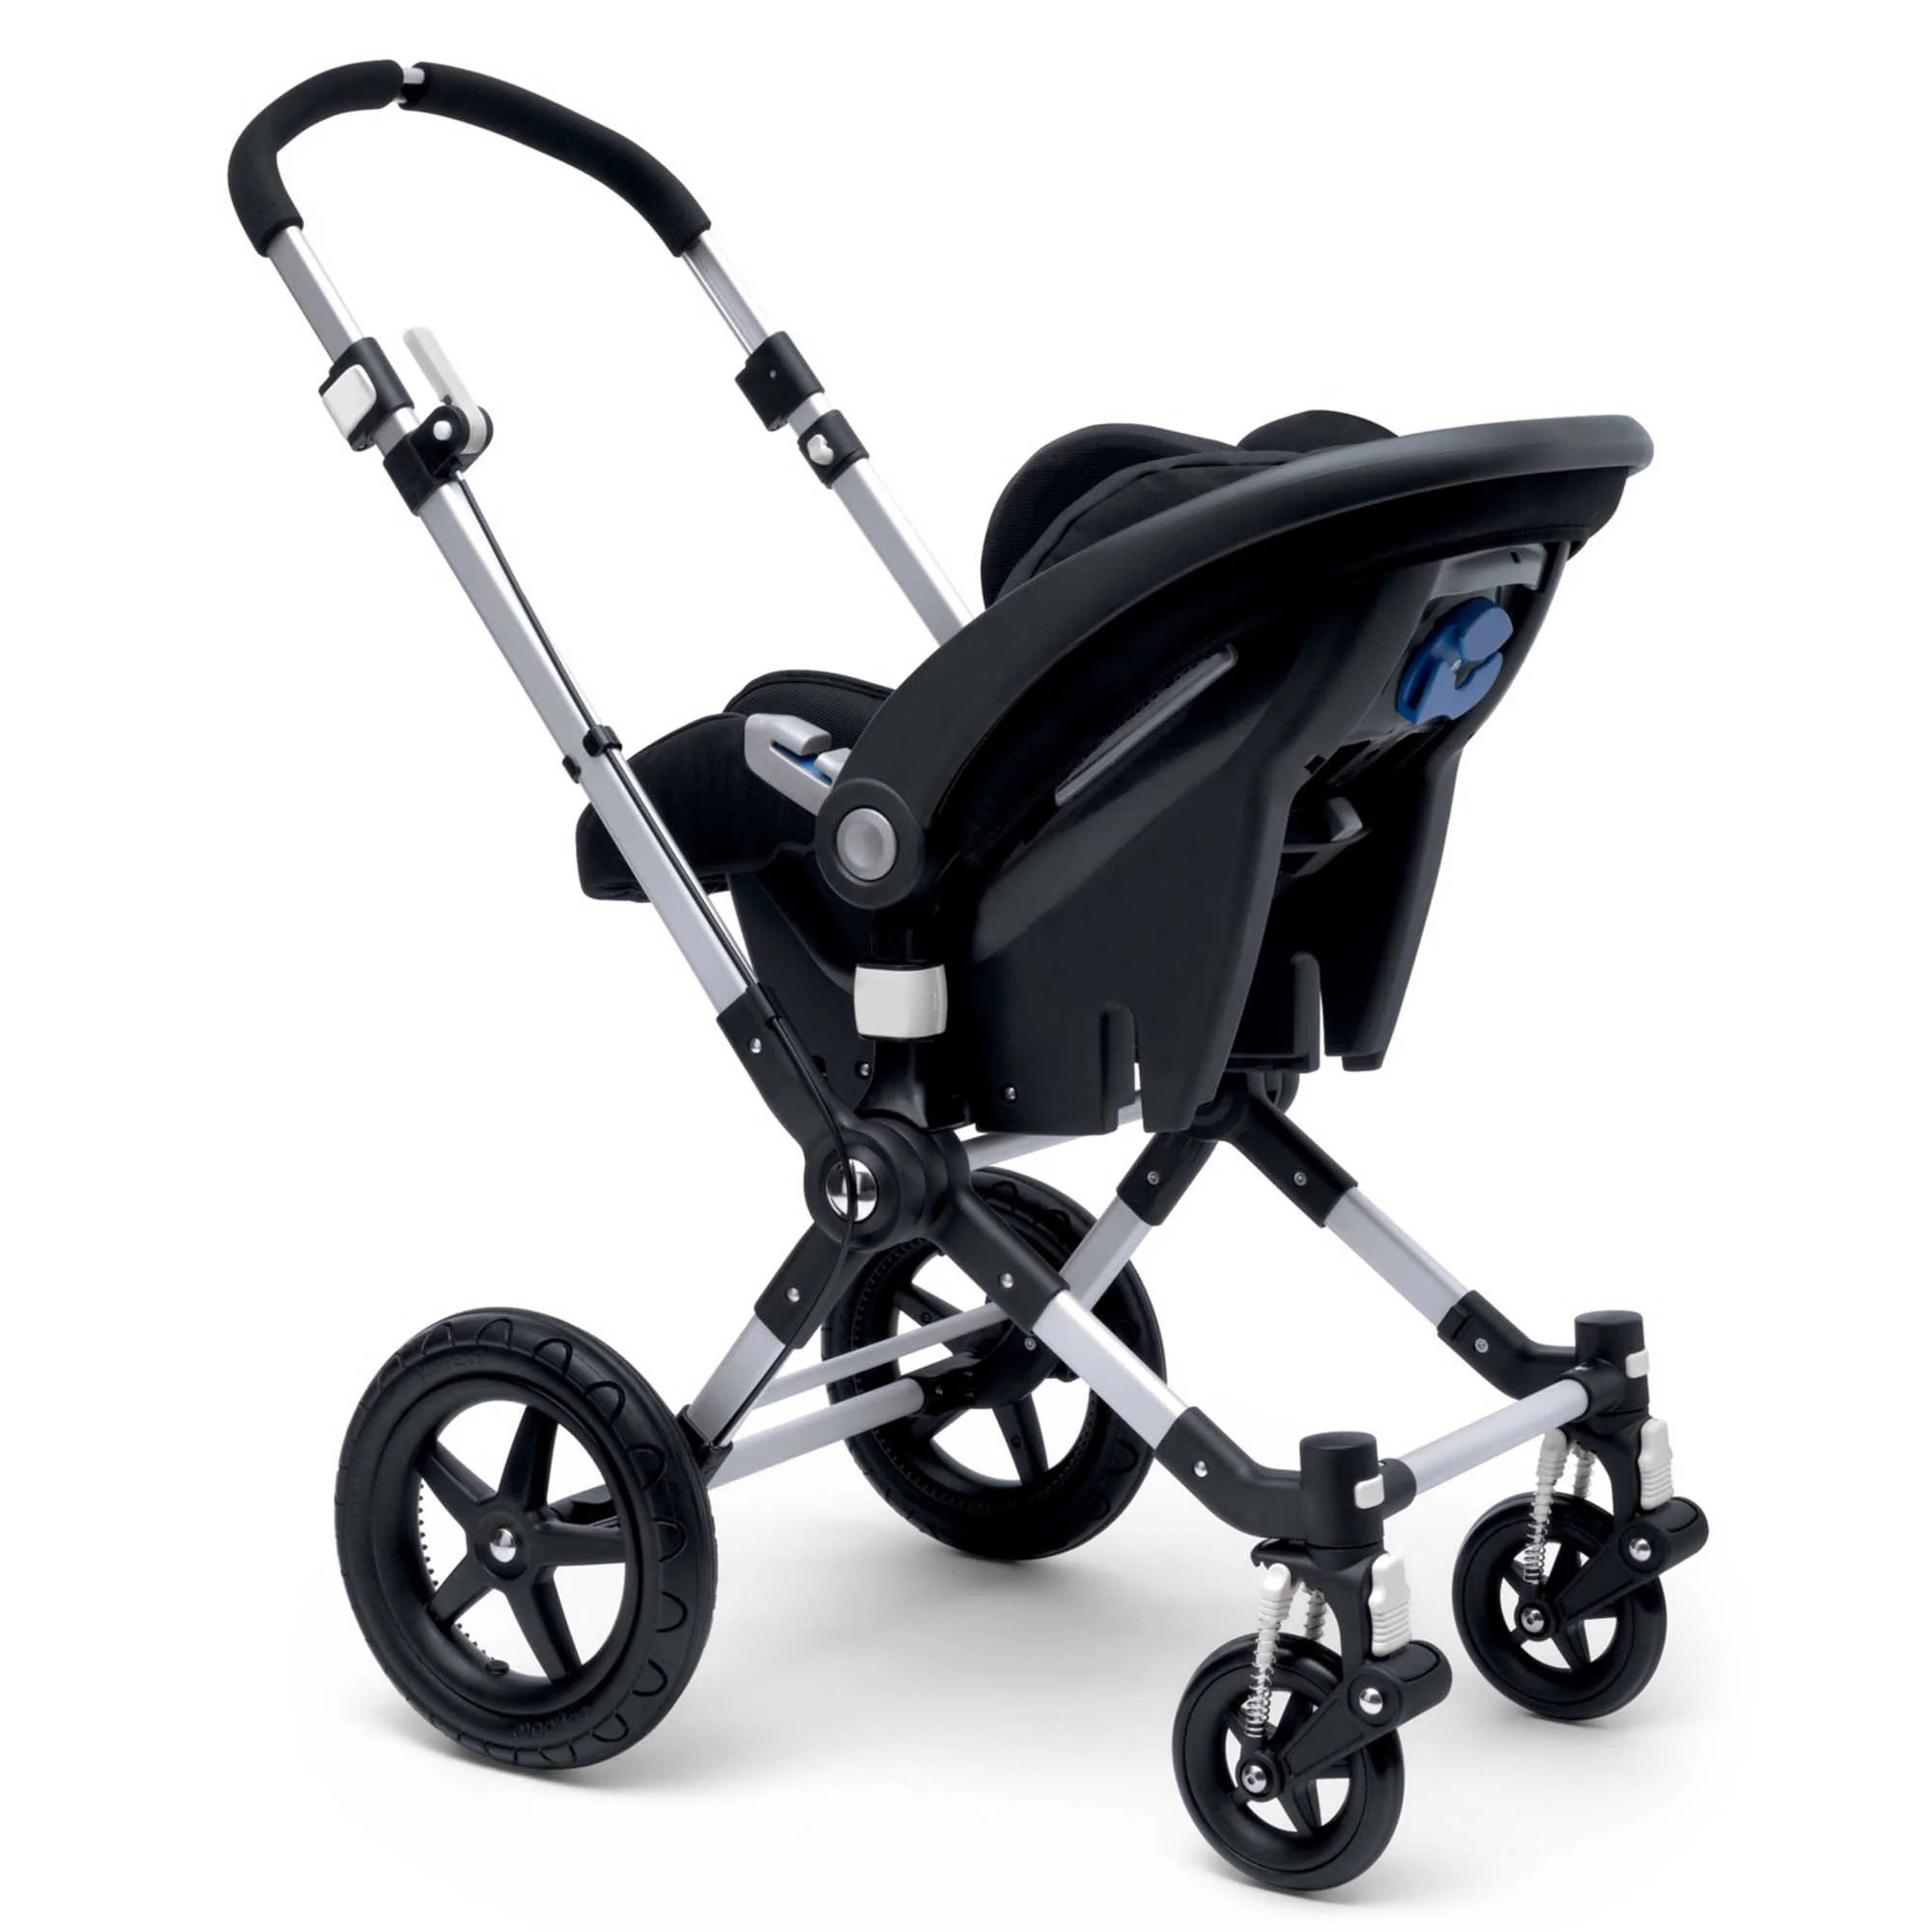 Graco Babyschale Adapter Rose Glen North Dakota Try These Bugaboo Cameleon 3 Graco